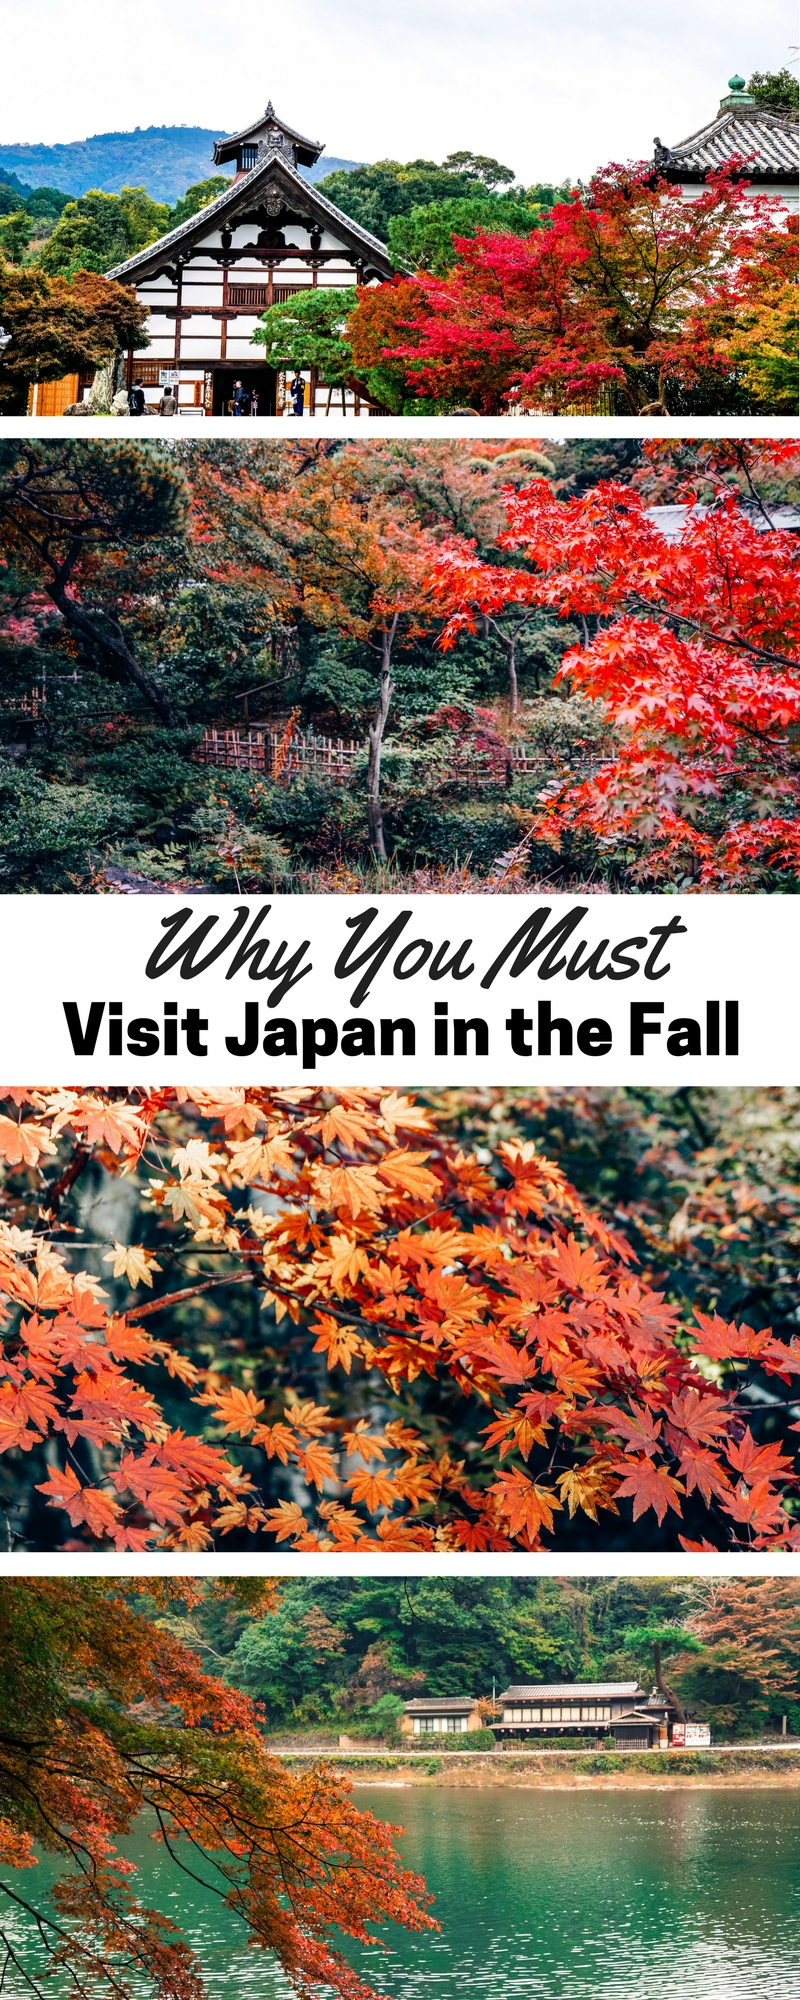 Whhy You Must Visit Japan in the Fall